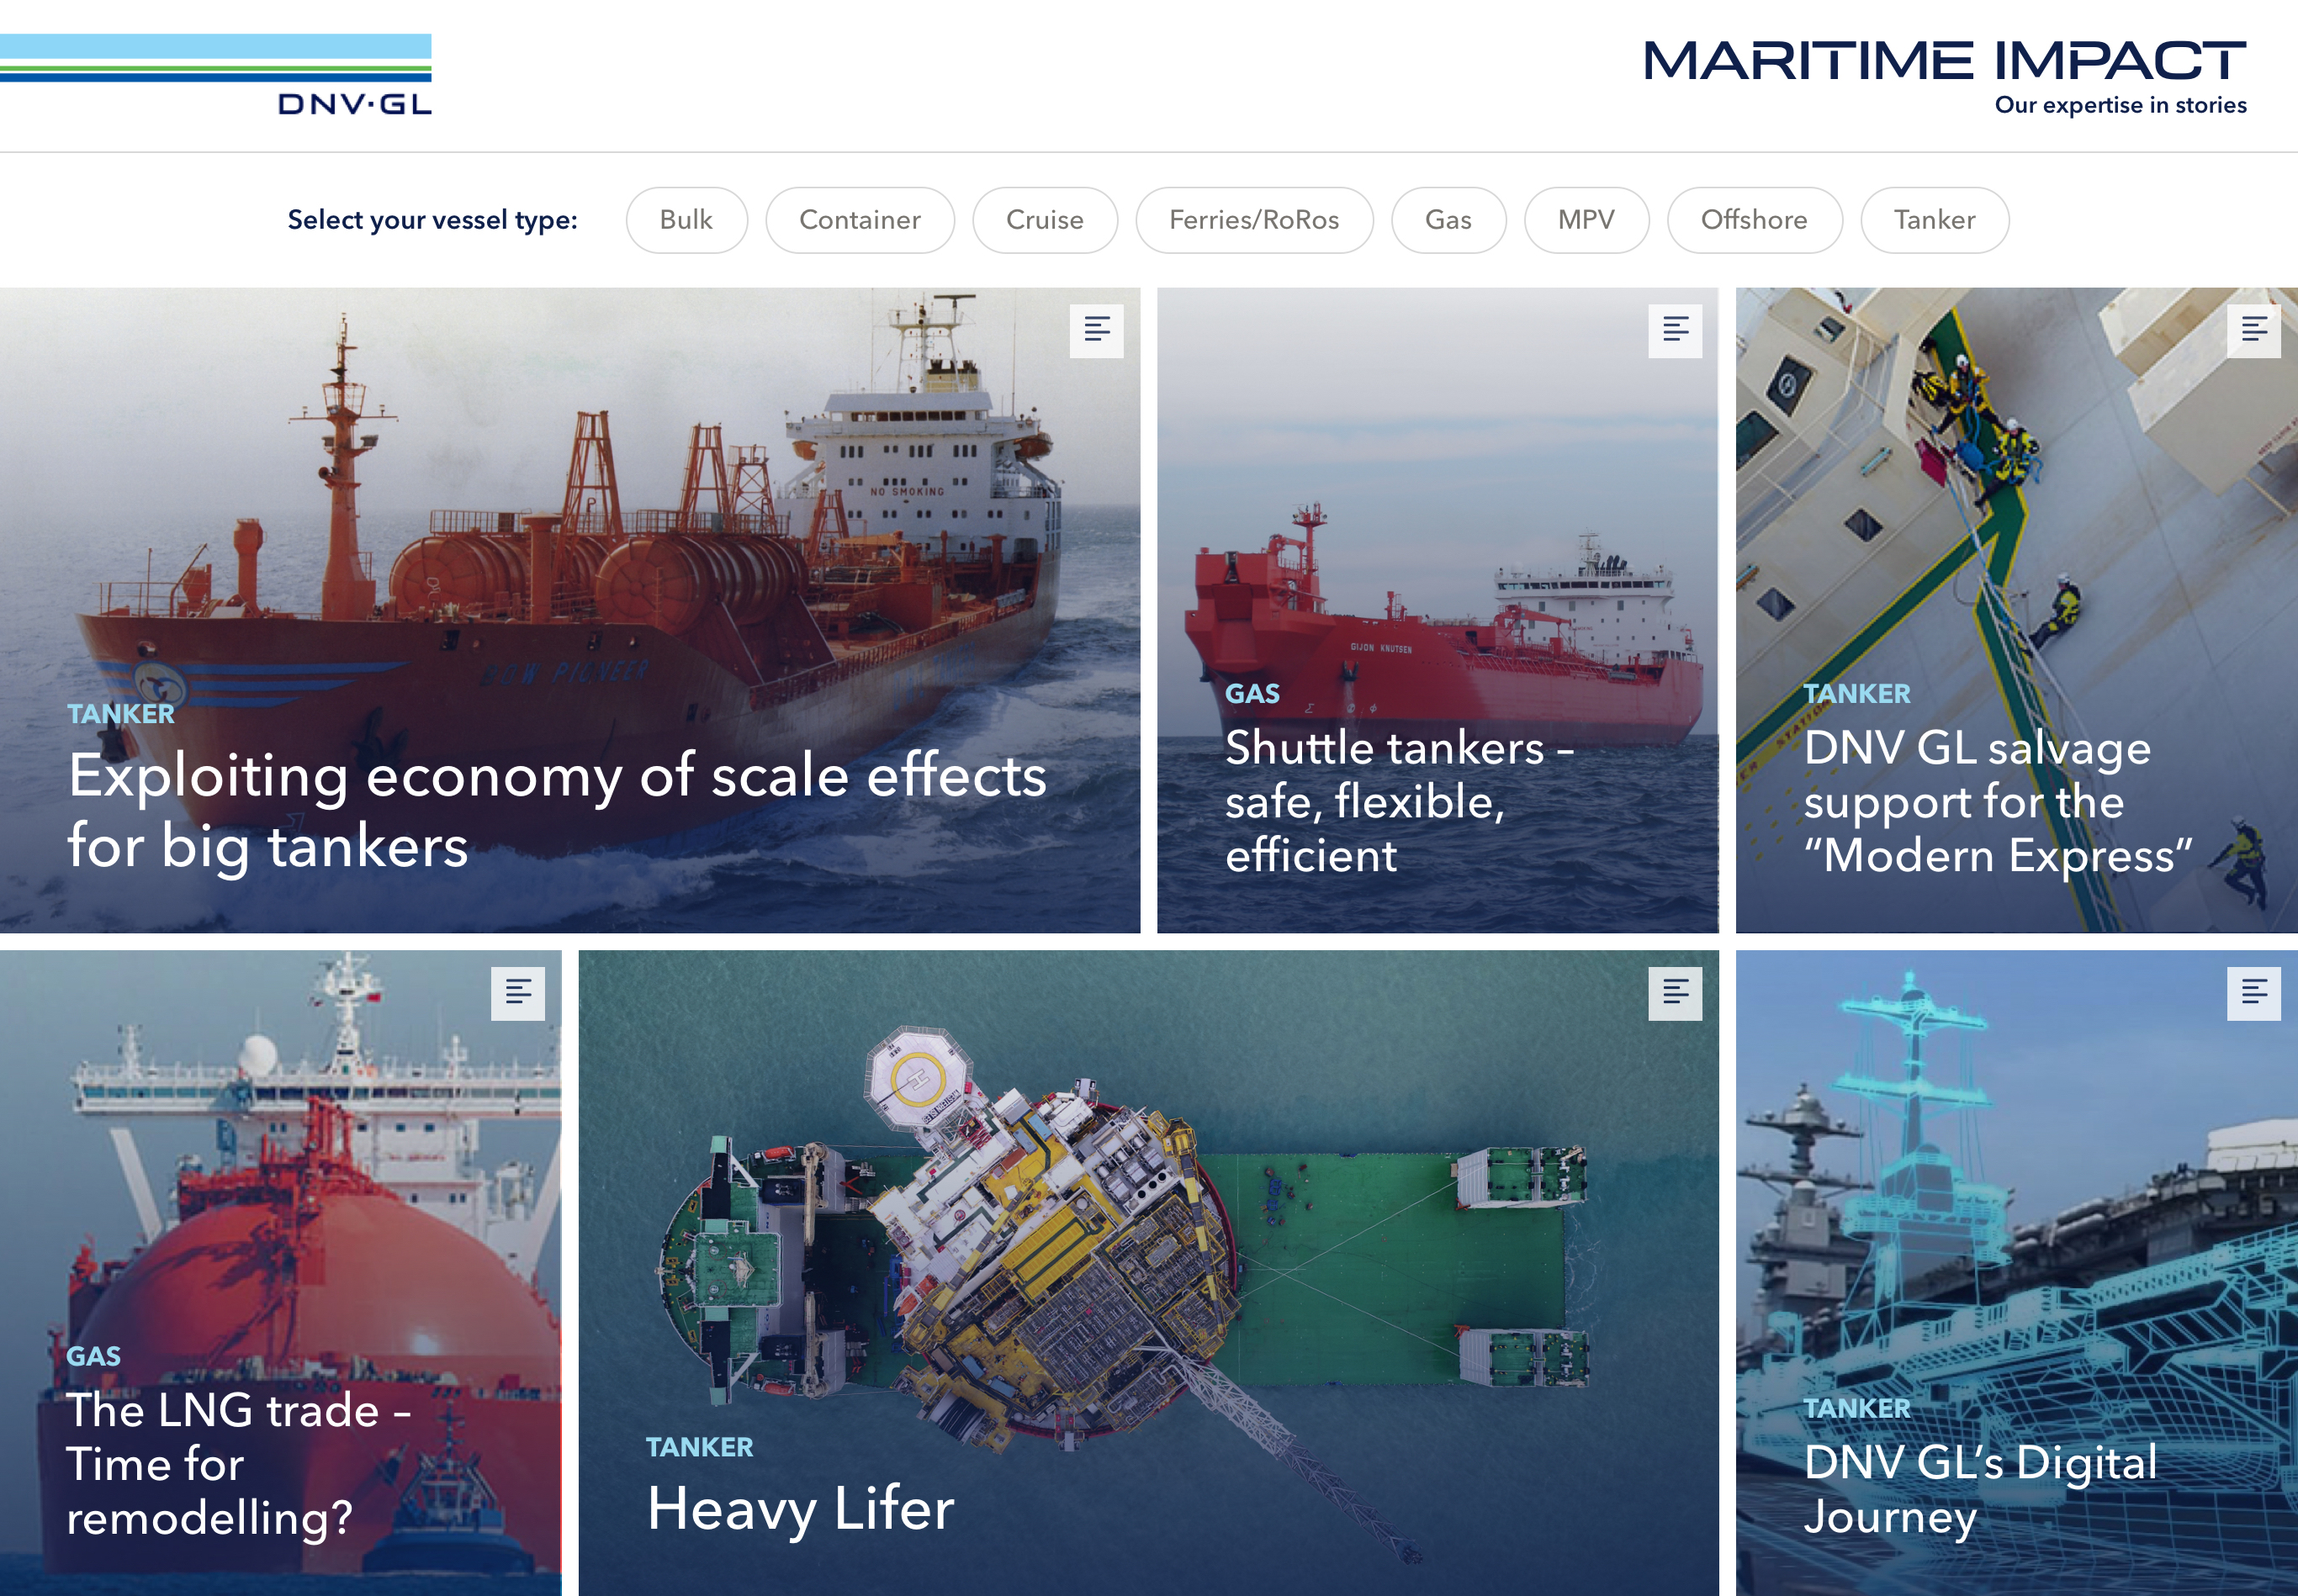 dnv-gl_maritime-impact_intro